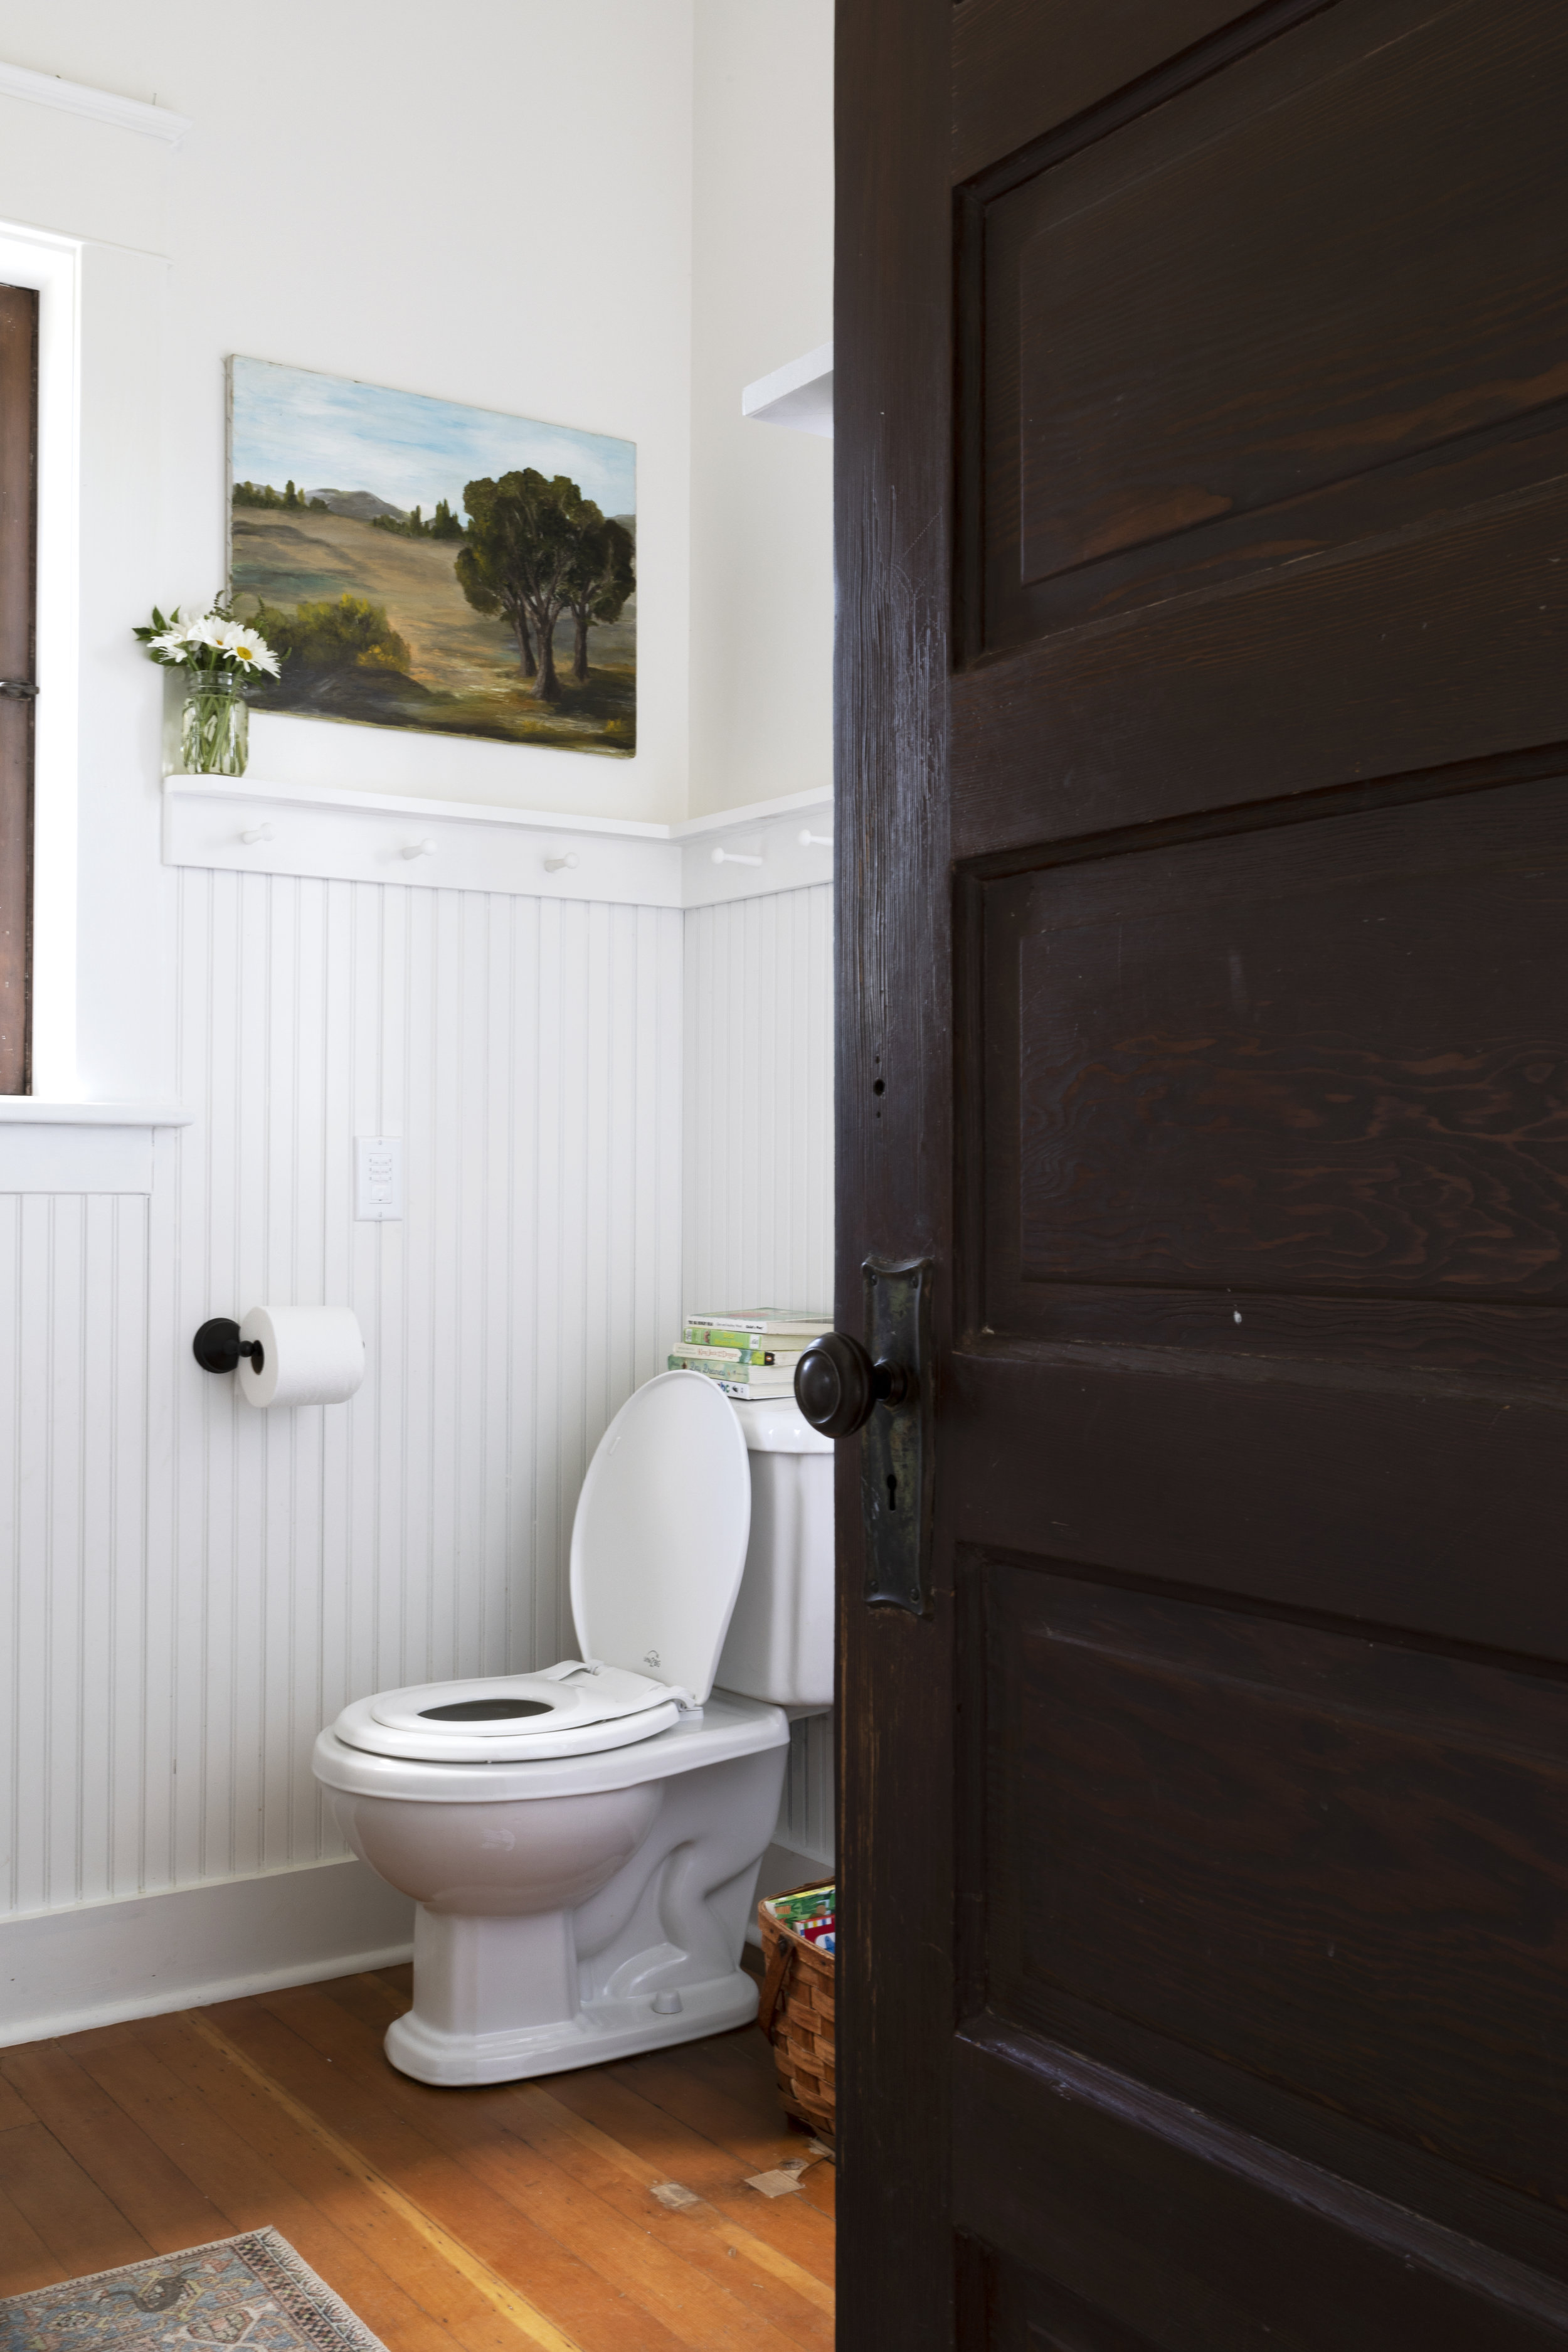 The Grit and Polish - Farmhouse Bathroom Potty Training 5.jpg